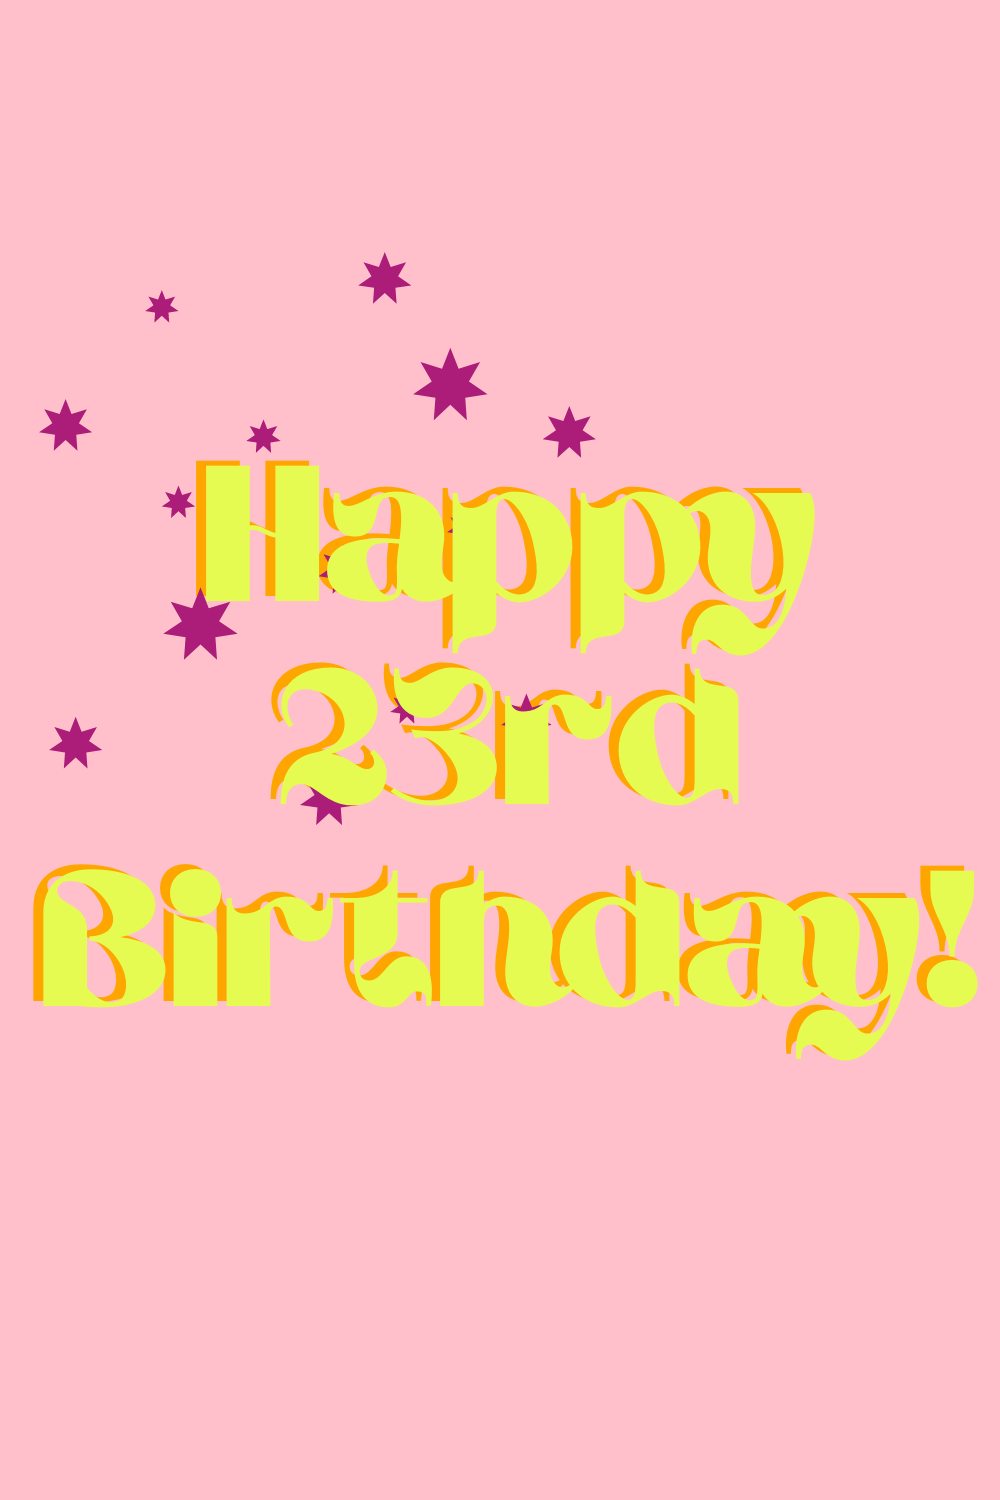 23rd Birthday Quotes & Images